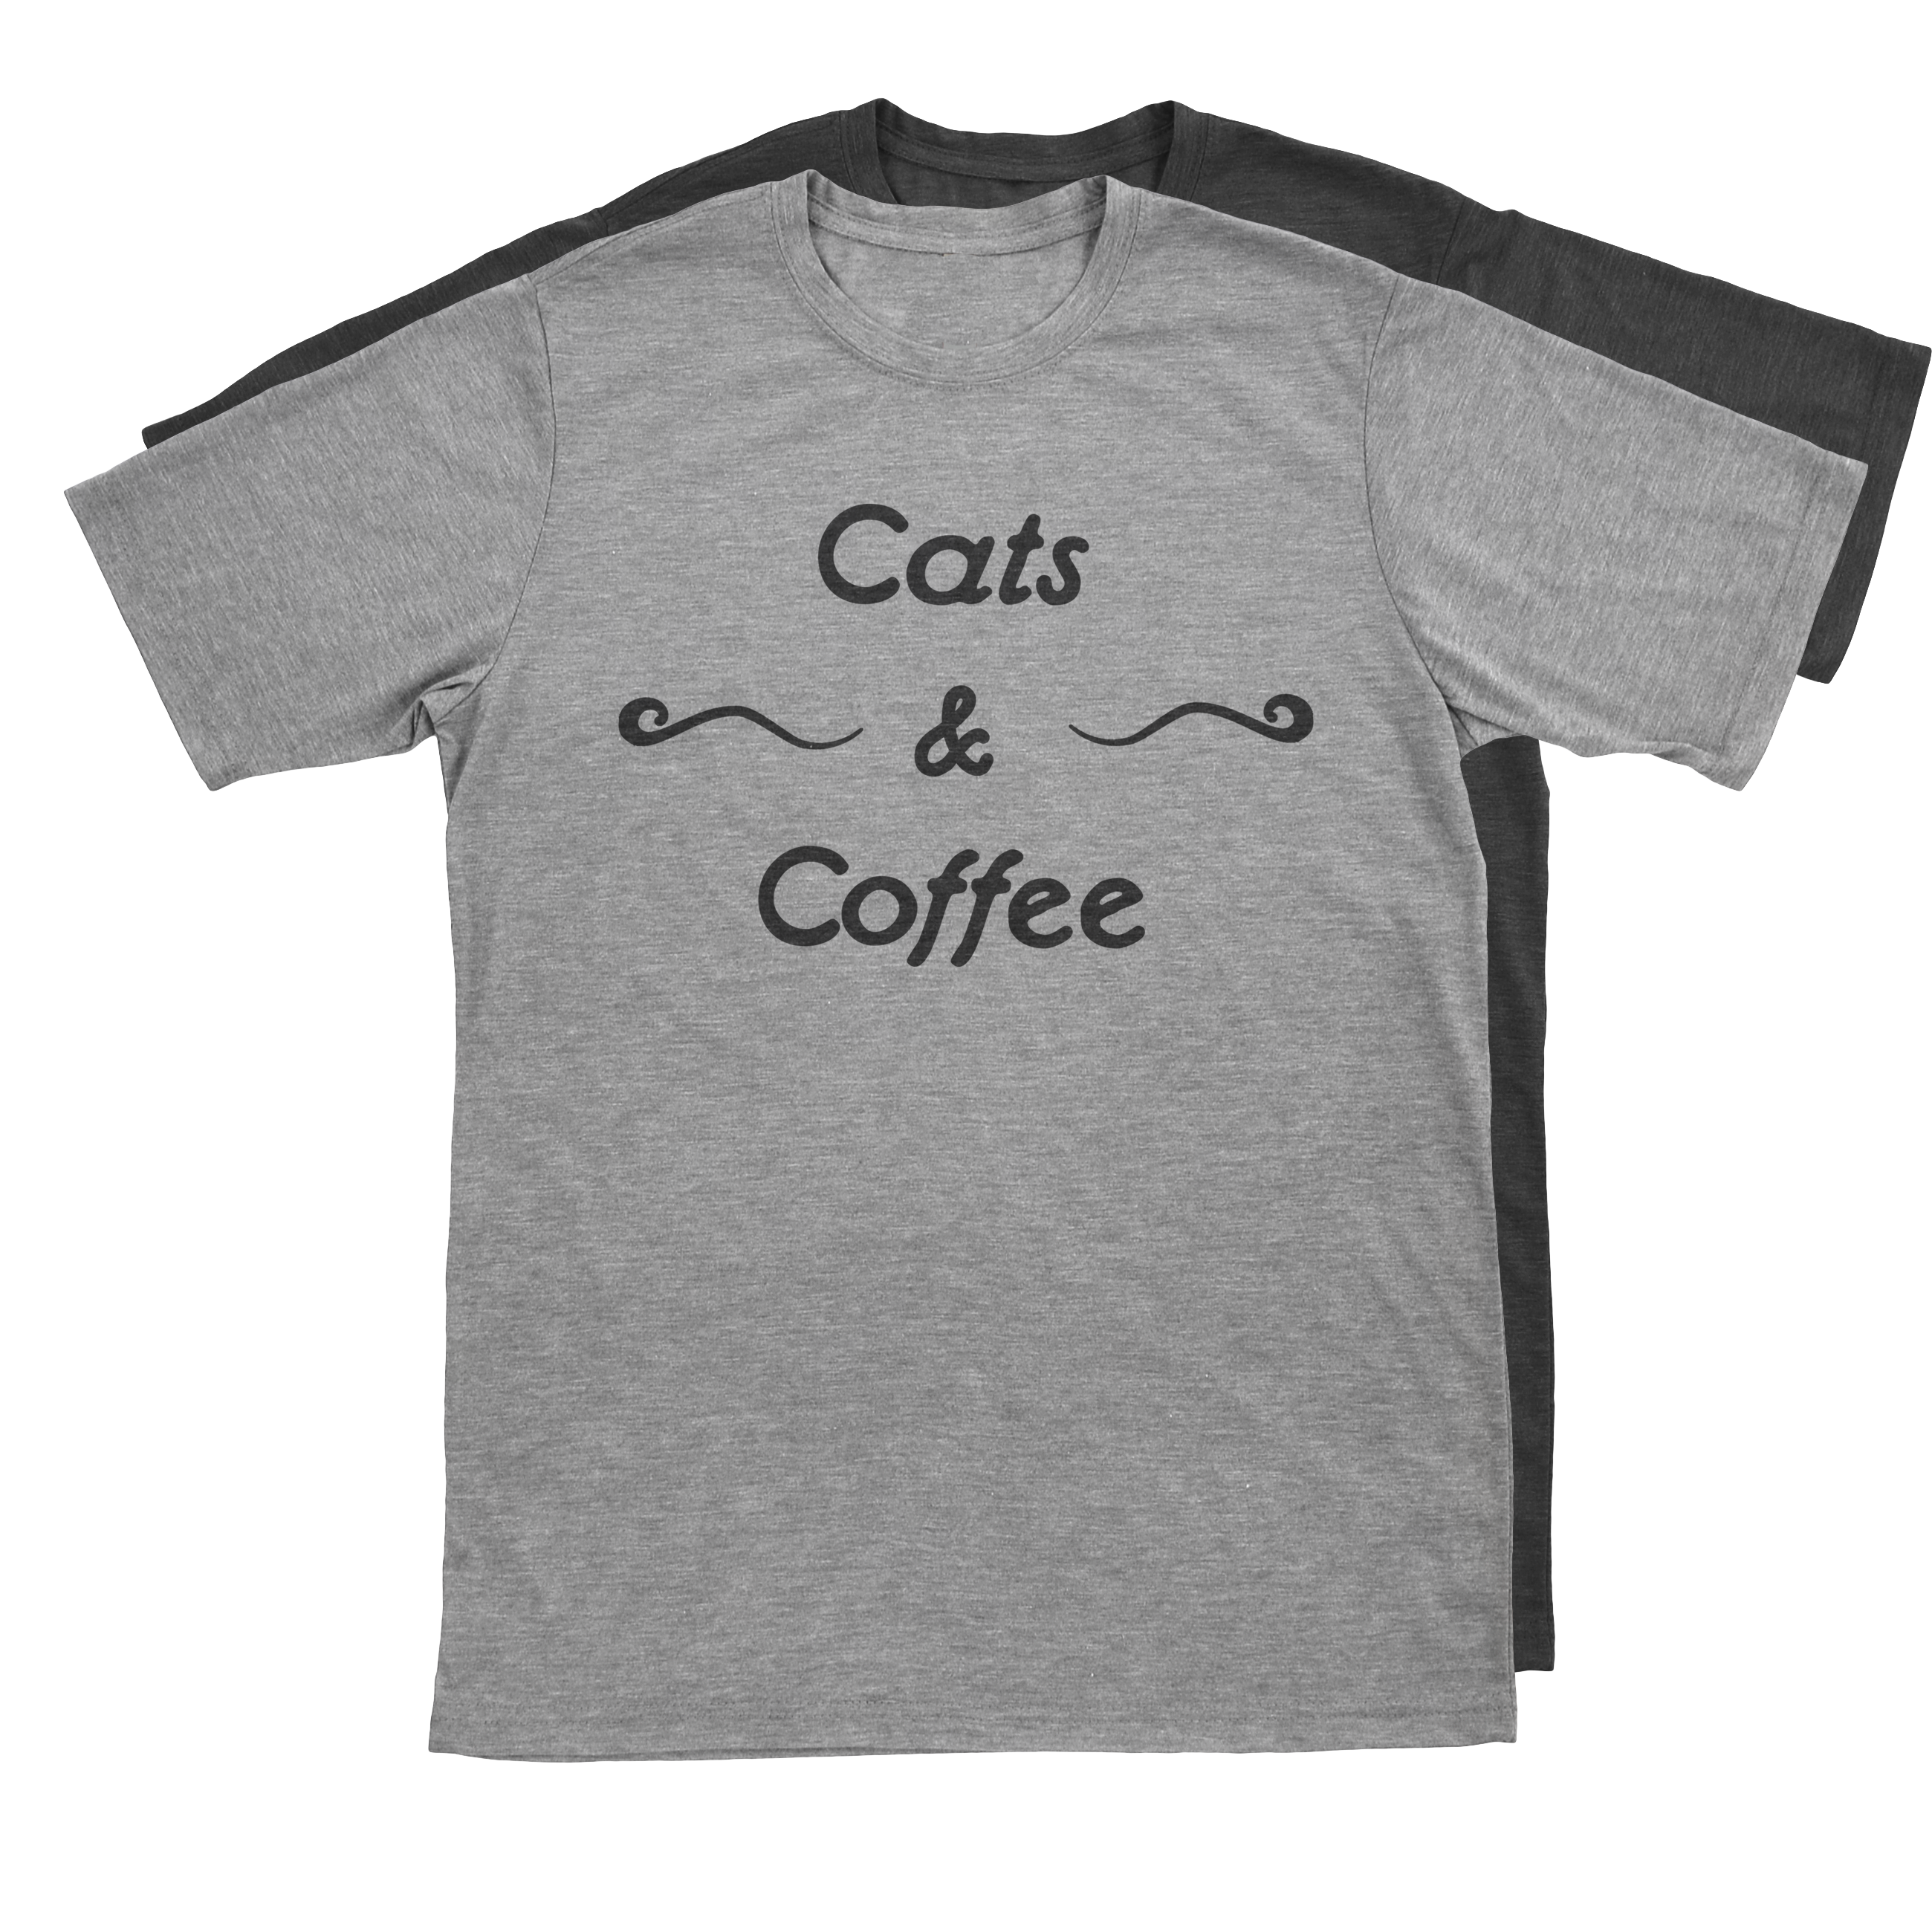 Cats & Coffee